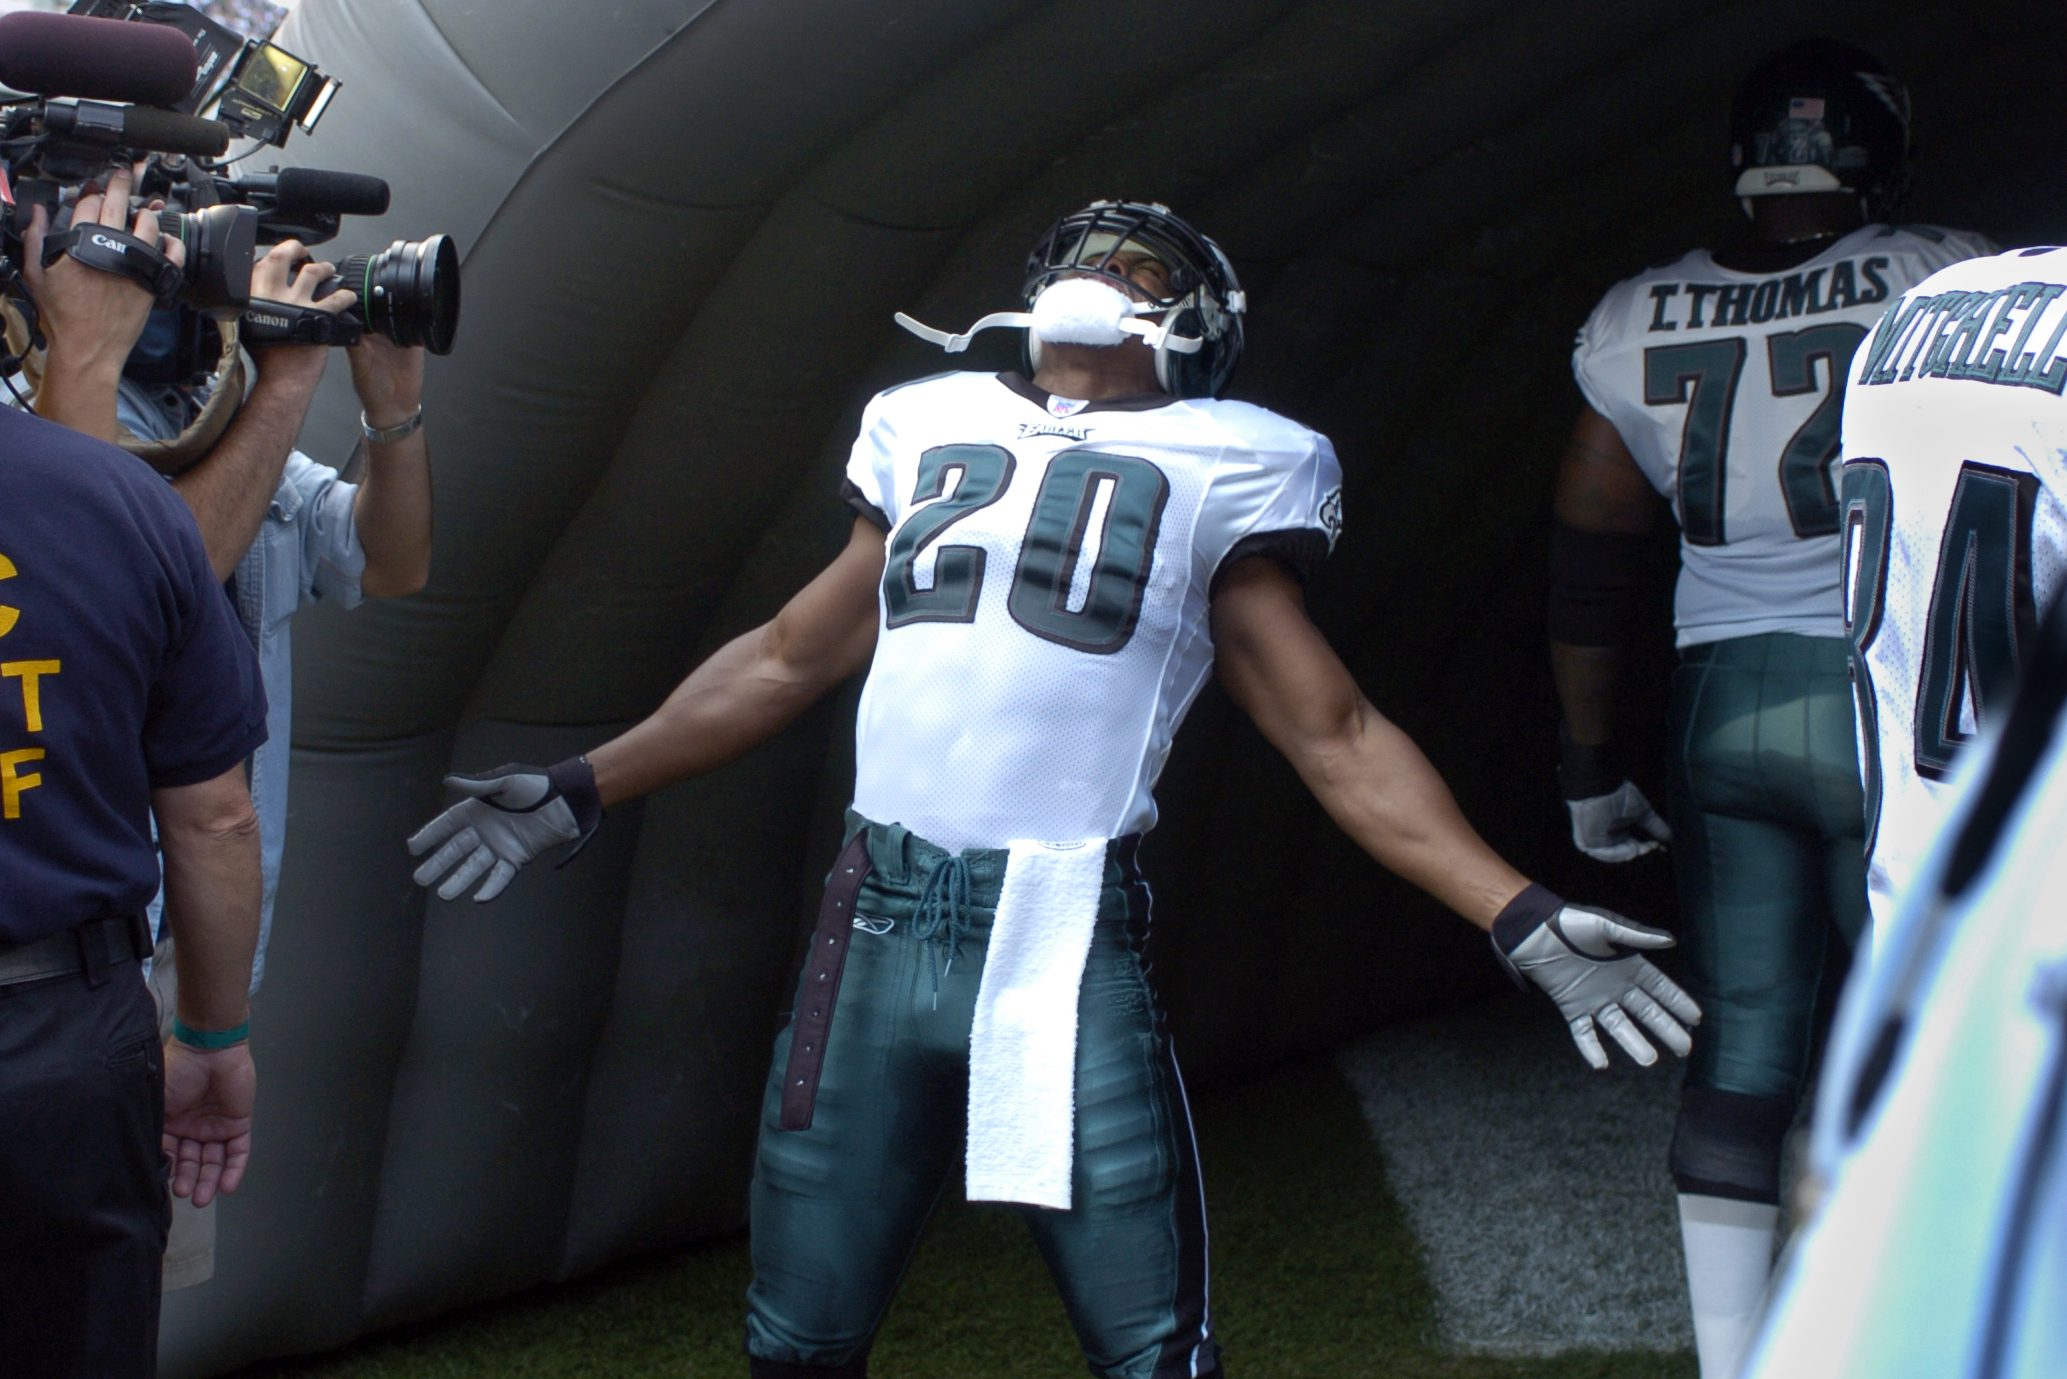 Eagles Brian Dawkins gets fired-up before the start of their first game of the season on Sunday, September 12, 2004 at Lincoln Financial Field.